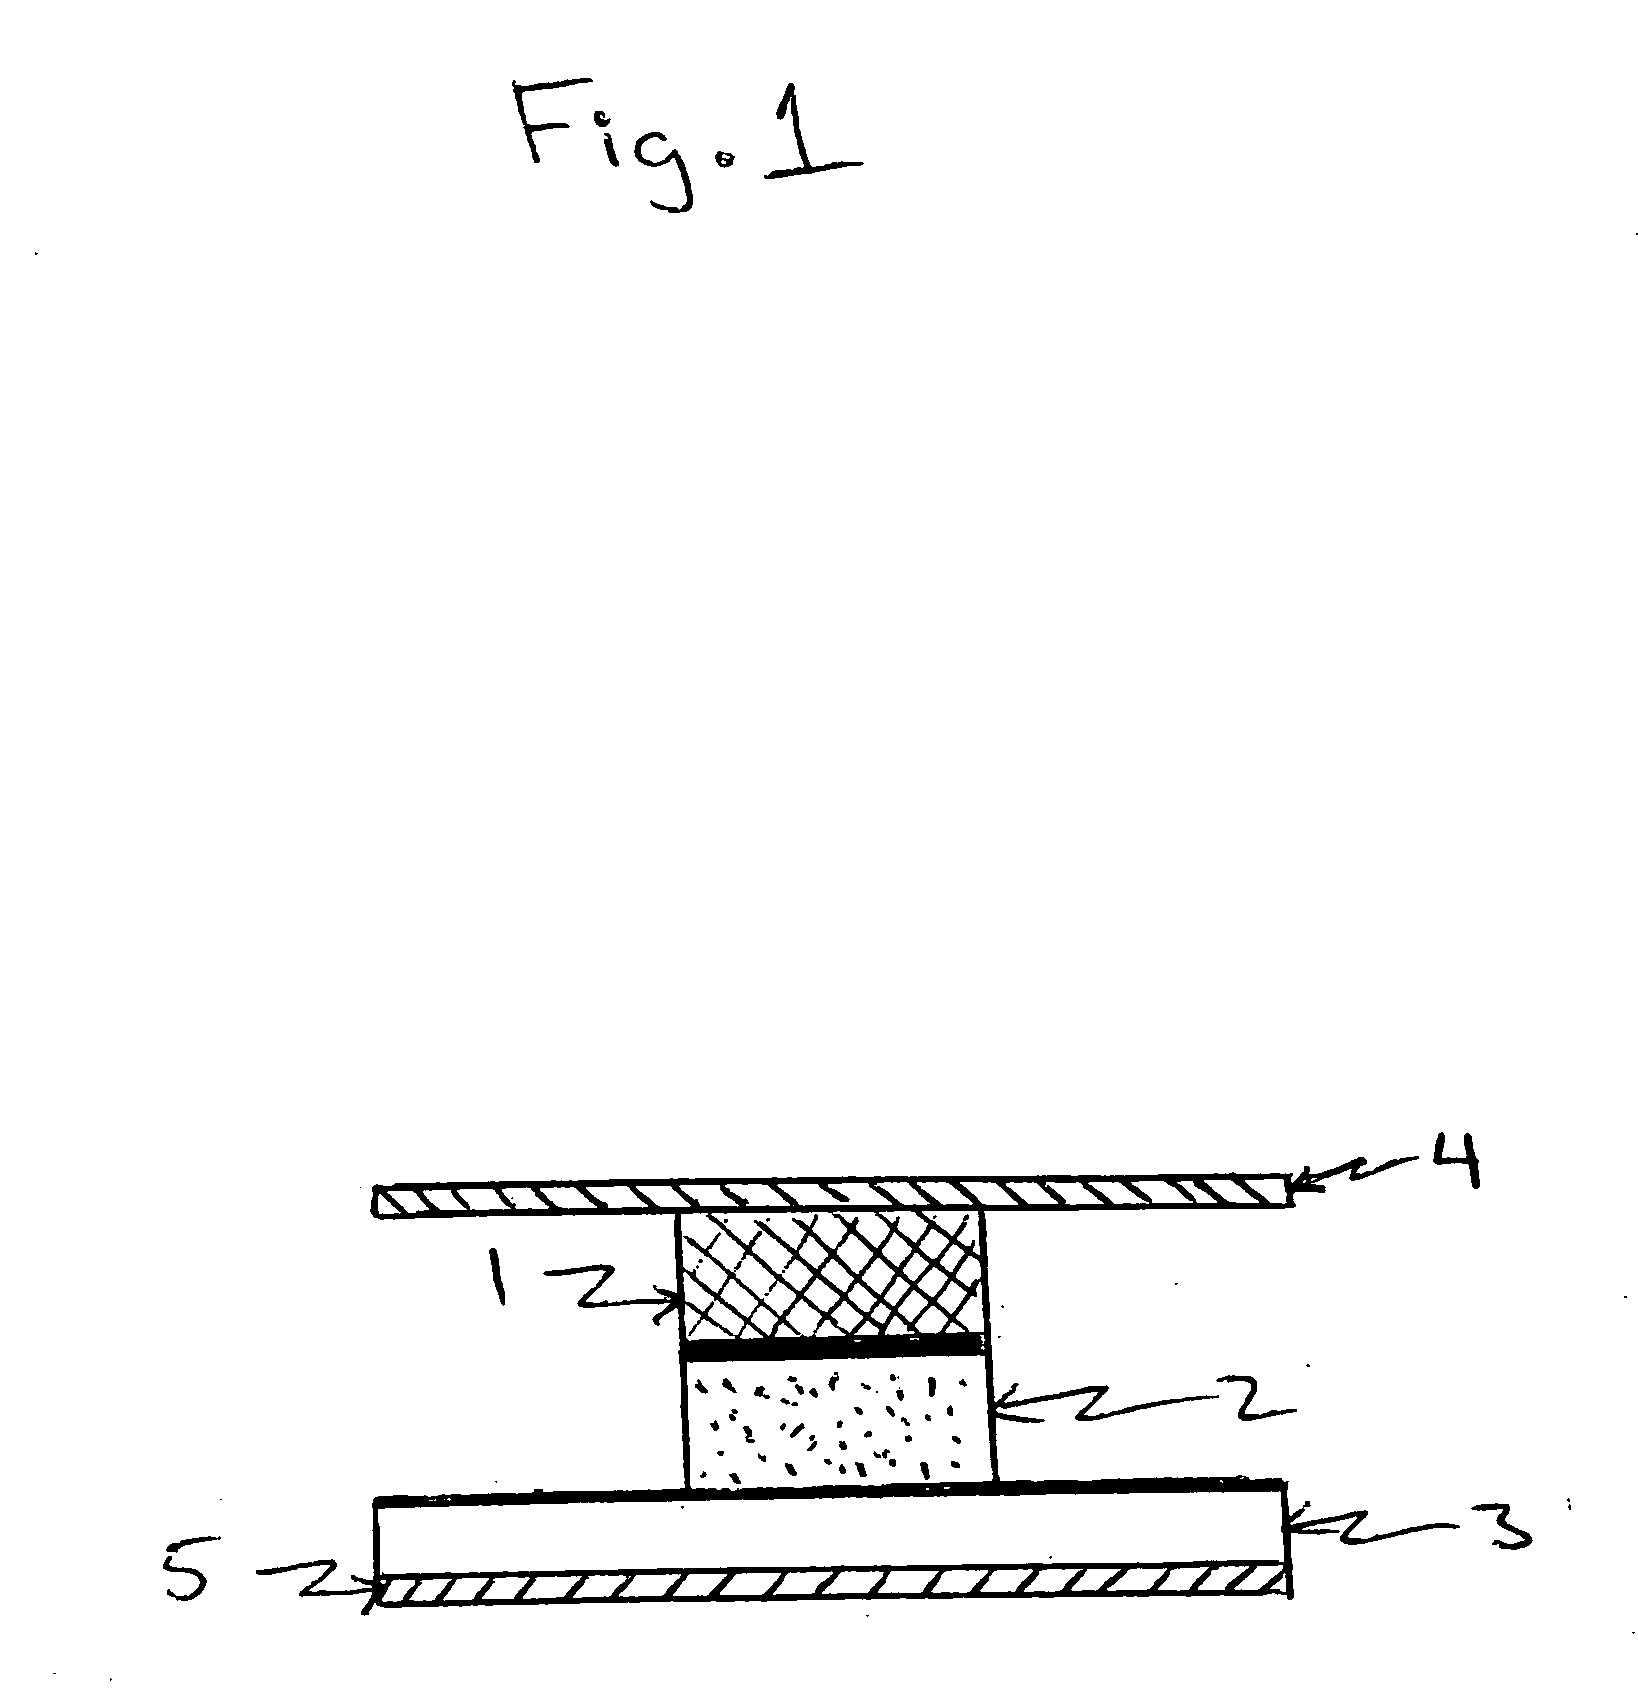 Patent US Dry formulation for transcutaneous